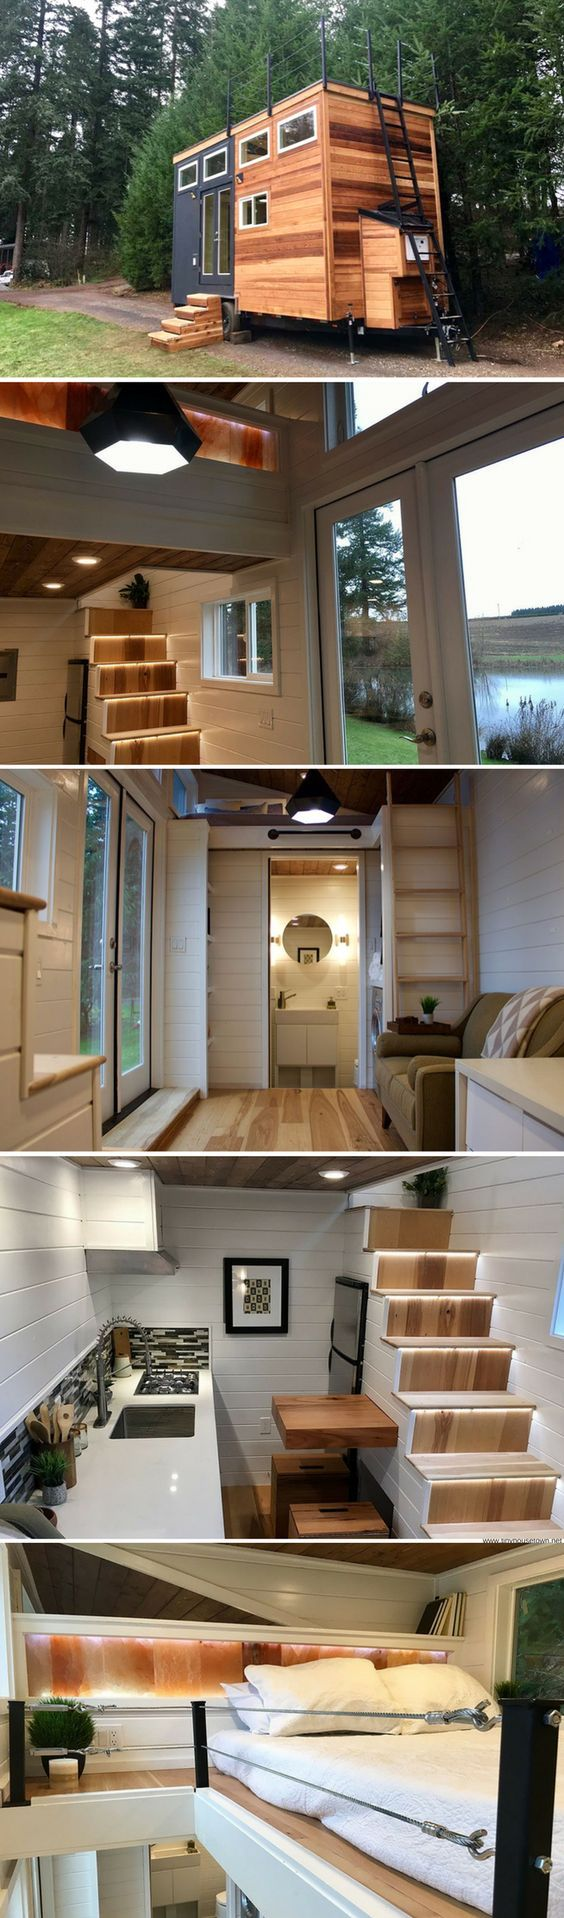 The Tiny House of Zen from Tiny Heirloom | Tiny houses ... Zen Modern Tiny House Designs on 3d home elevation designs, modern concrete house designs, modern house philippines, modern riverfront home, modern house exterior design, modern home designs in the philippines, japanese modern living room interior designs, modern duplex house designs, modern zen interior design, modern house interior design ideas, modern tropical house design, modern house roof designs, modern floor tile designs, modern mediterranean house designs, modern style house design, modern home design plans, modern japanese house design, modern kitchen interior design living room, modern two-storey house designs, modern house view,